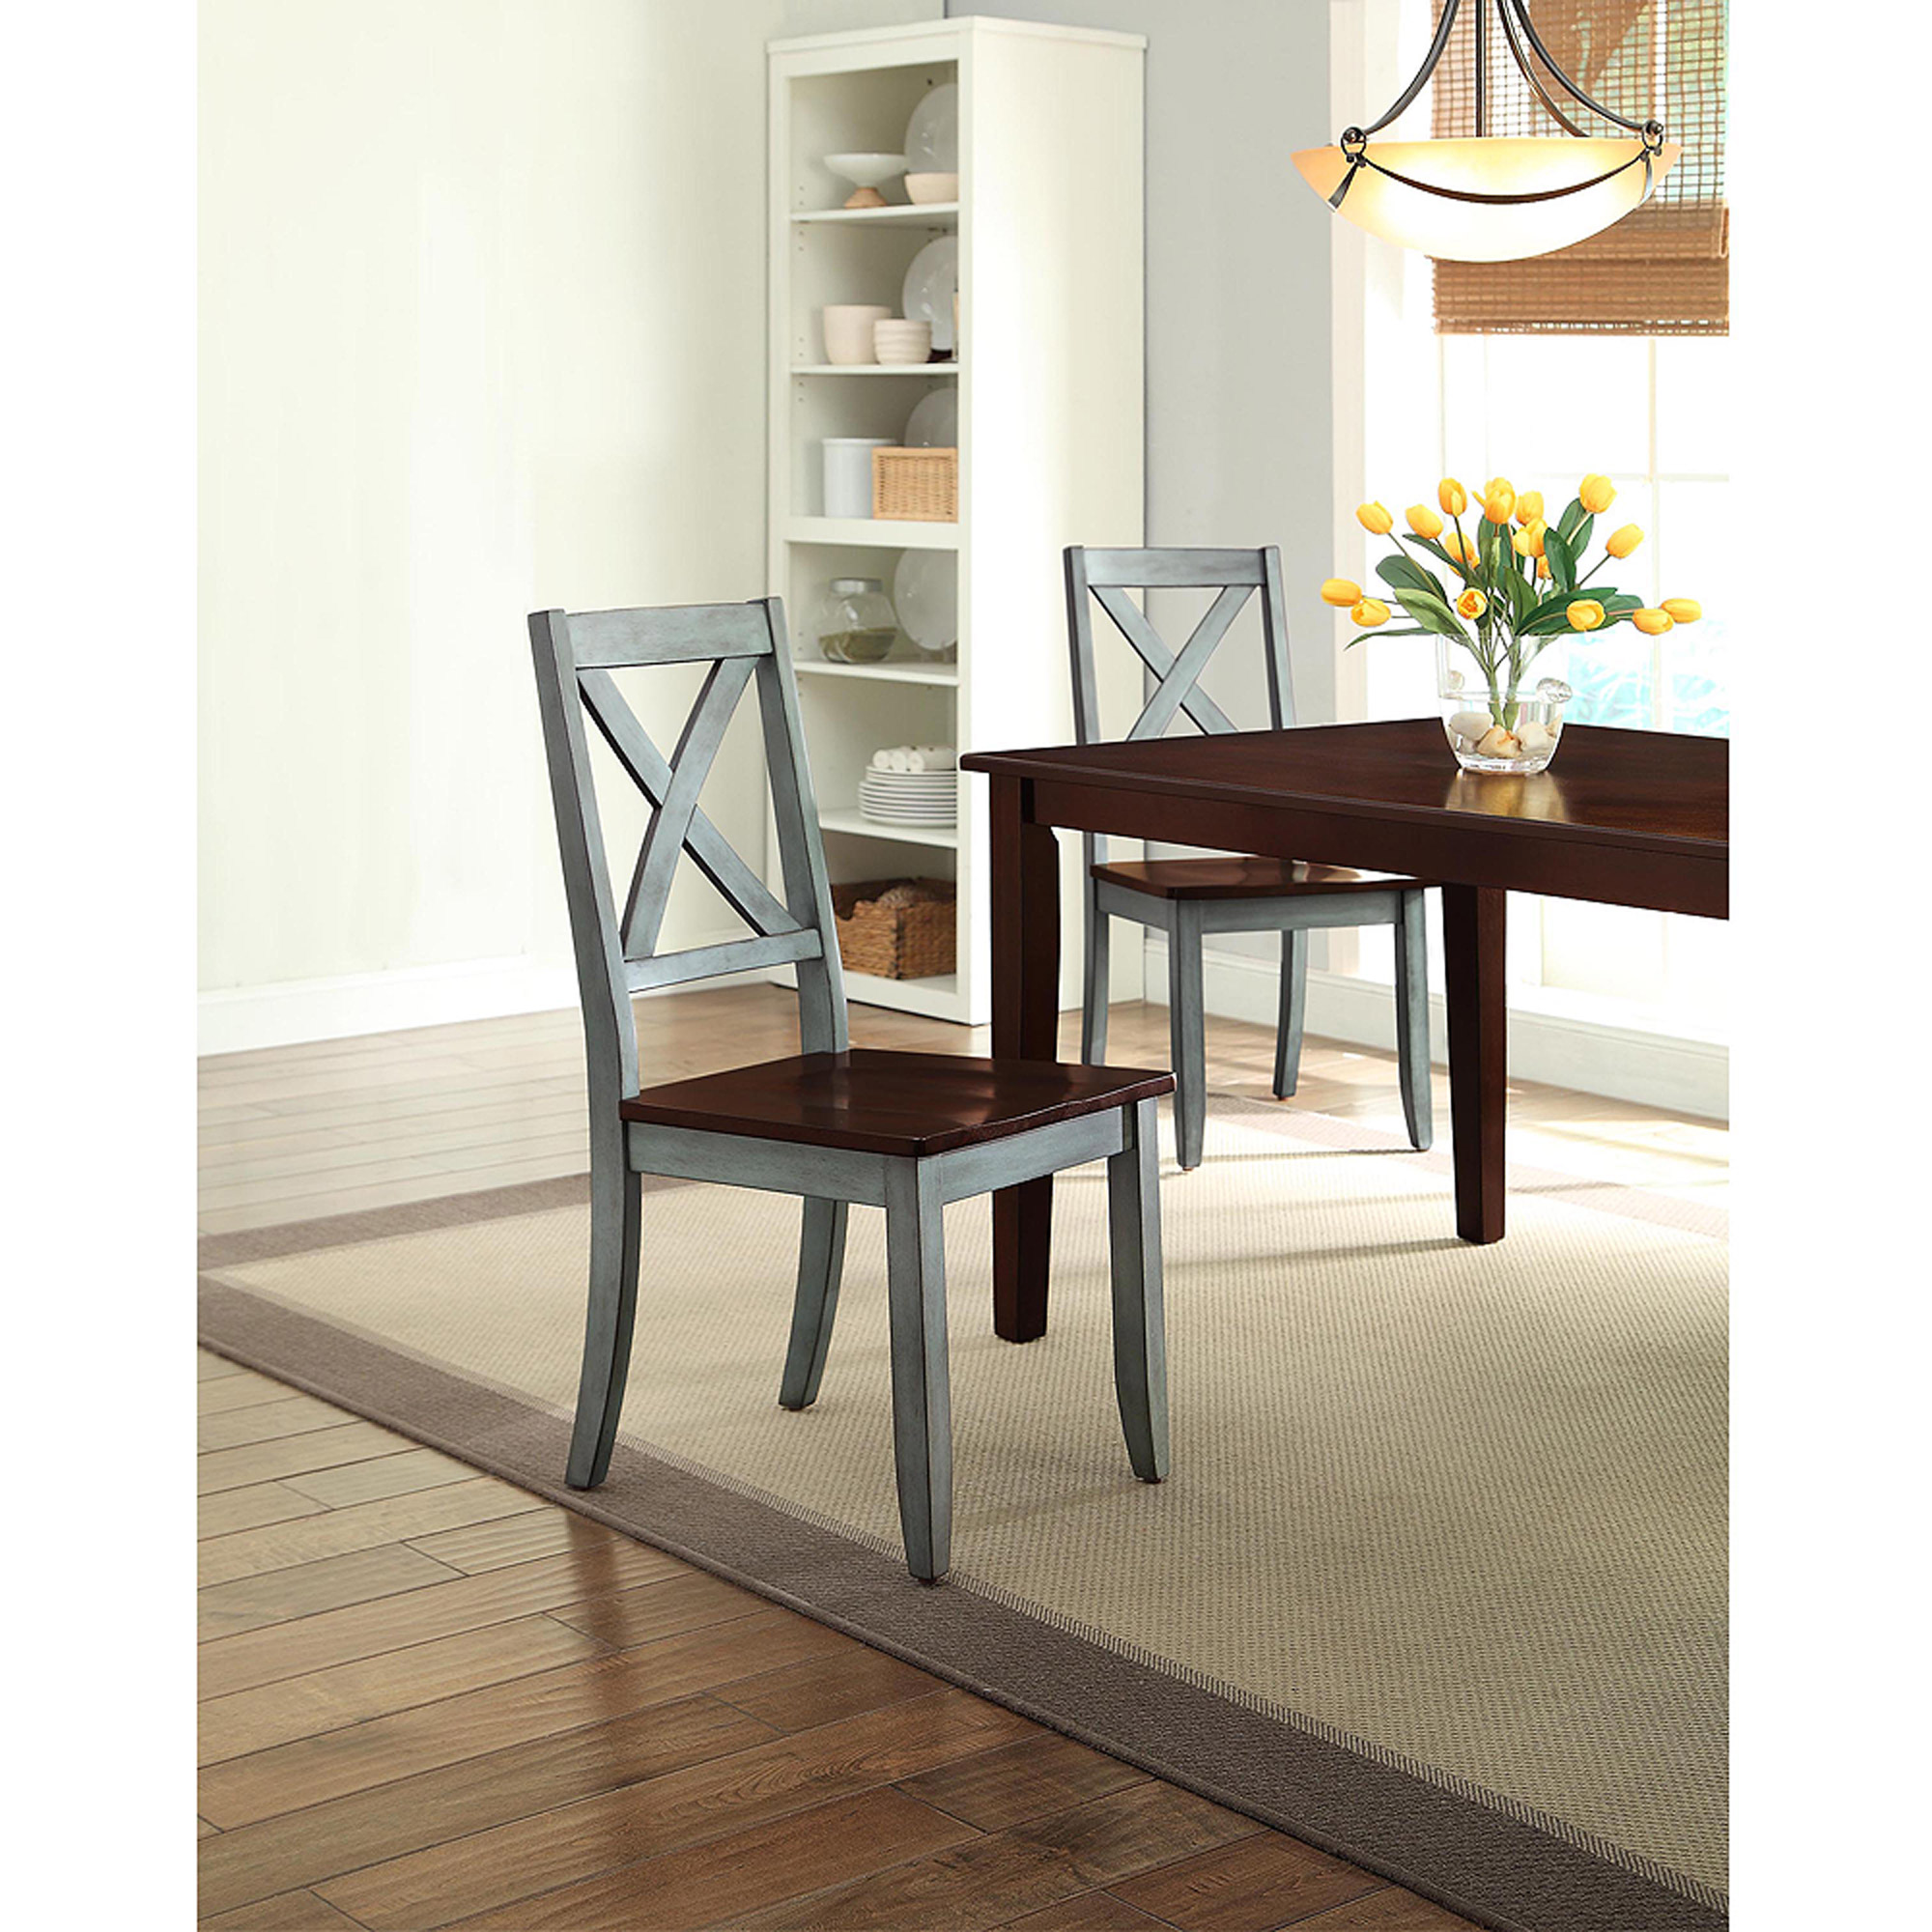 Best Kitchen Gallery: Better Homes And Gardens Maddox Crossing Dining Chair Blue Set Of of Dining Chairs Walmart  on rachelxblog.com